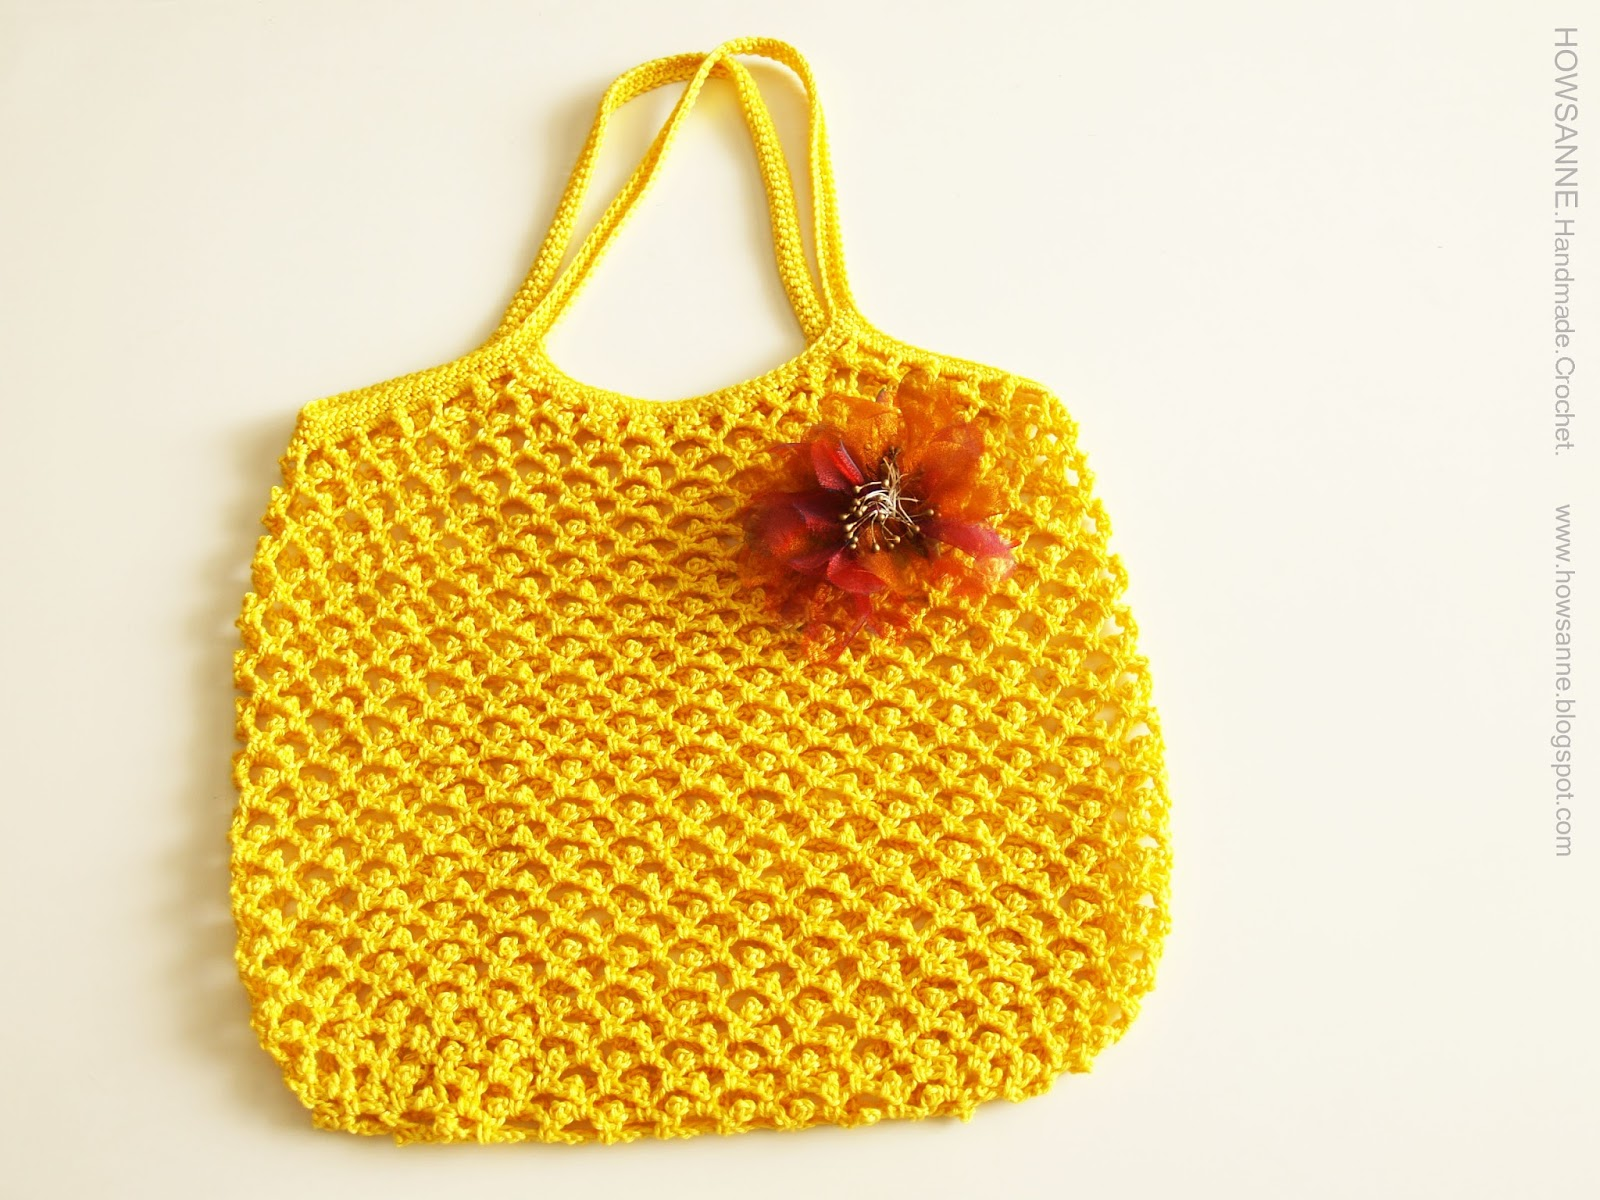 Howsanne Handmade Crochet : Crochet Shopping Mesh Bag and Tips on ...